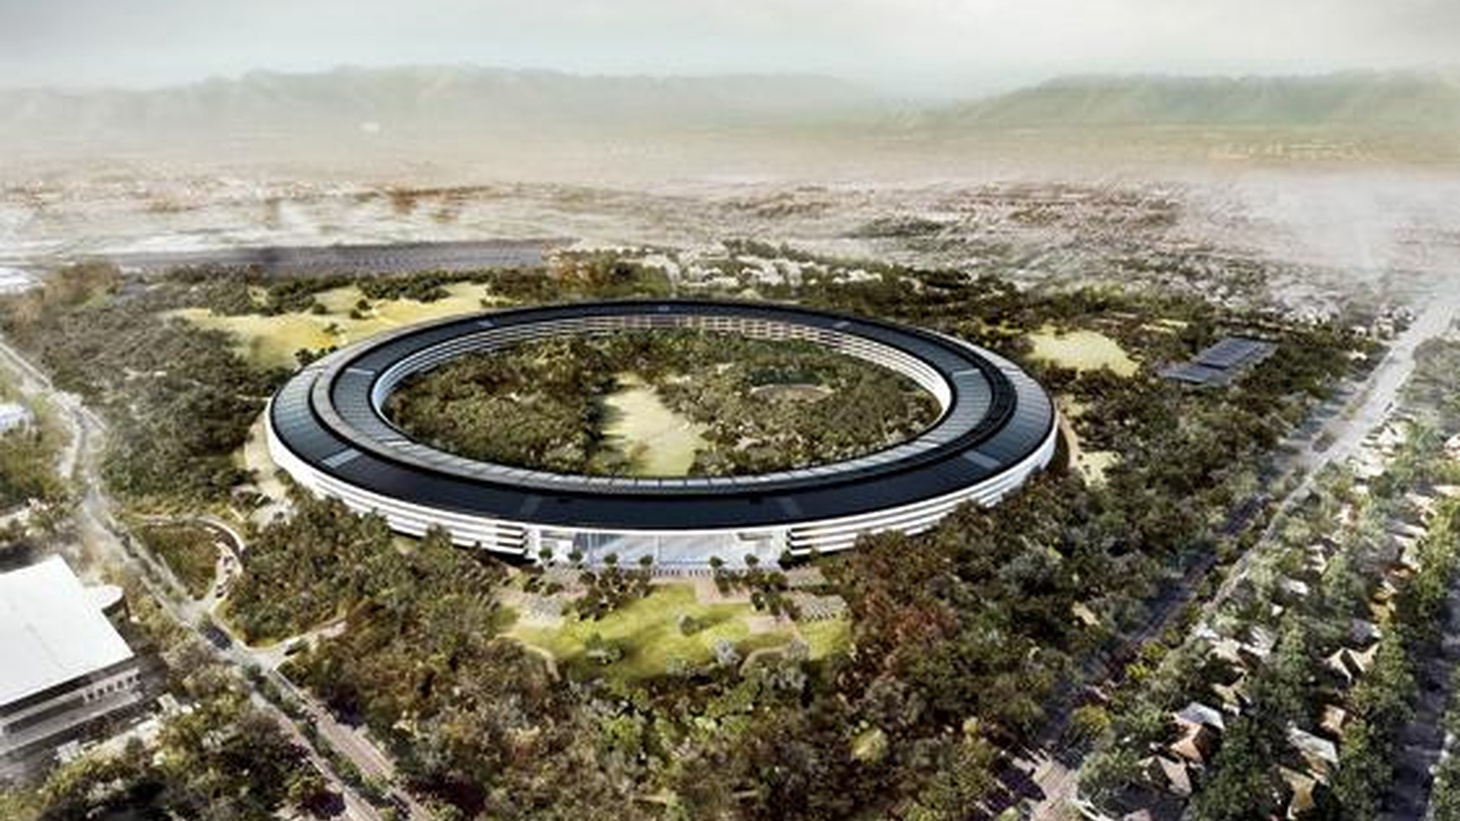 Tech titans in suburban Silicon Valley are trading in their regular office buildings for starchitect-designed campuses.